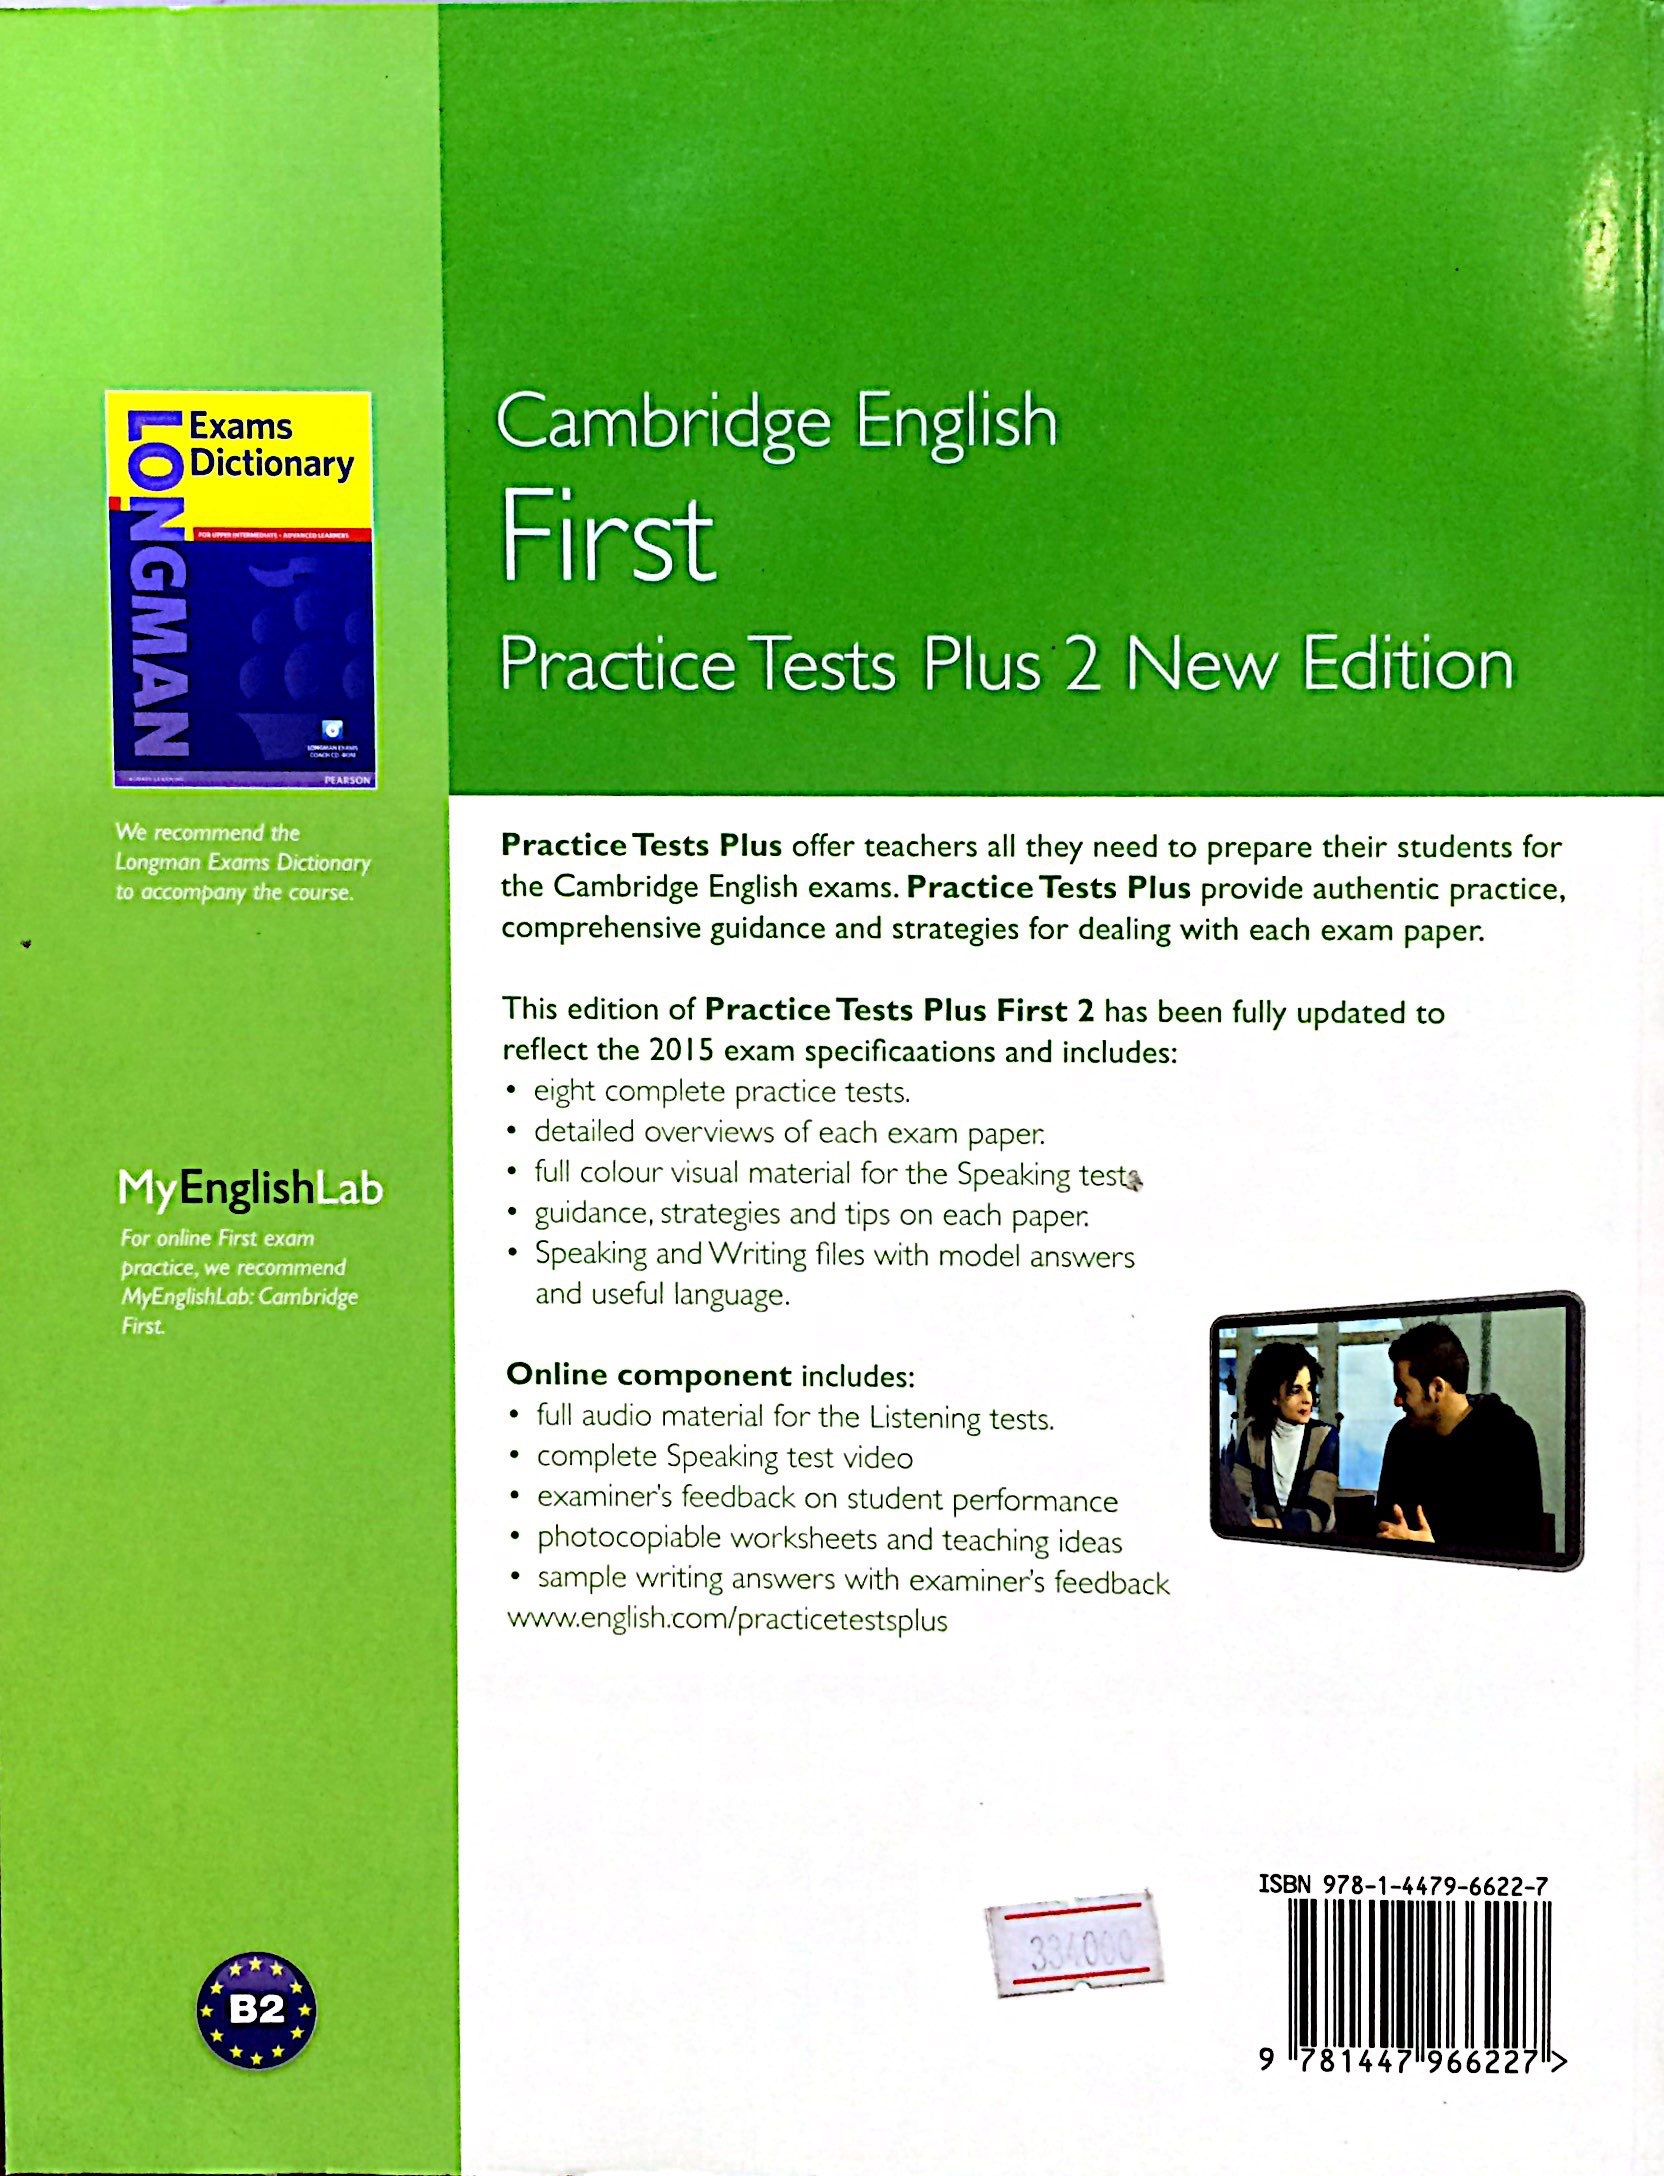 Cambridge First Practice Tests Plus New Edition Students' Book with Key -  ELTs | SachDayRoi com